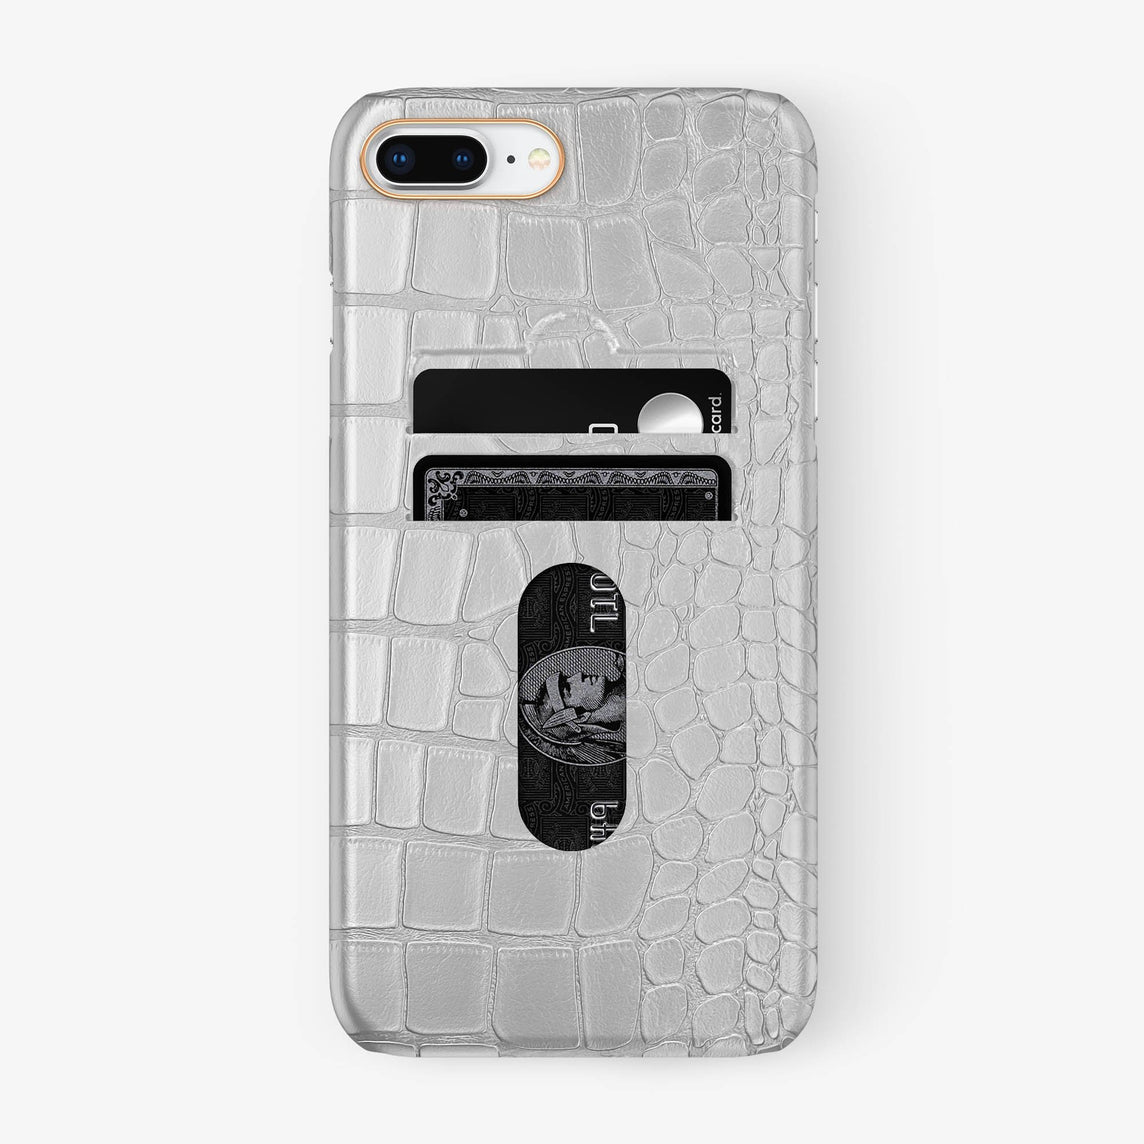 Alligator [iPhone Card Holder Case] [model:iphone-7p-8p-case] [colour:white] [finishing:rose-gold] - Hadoro